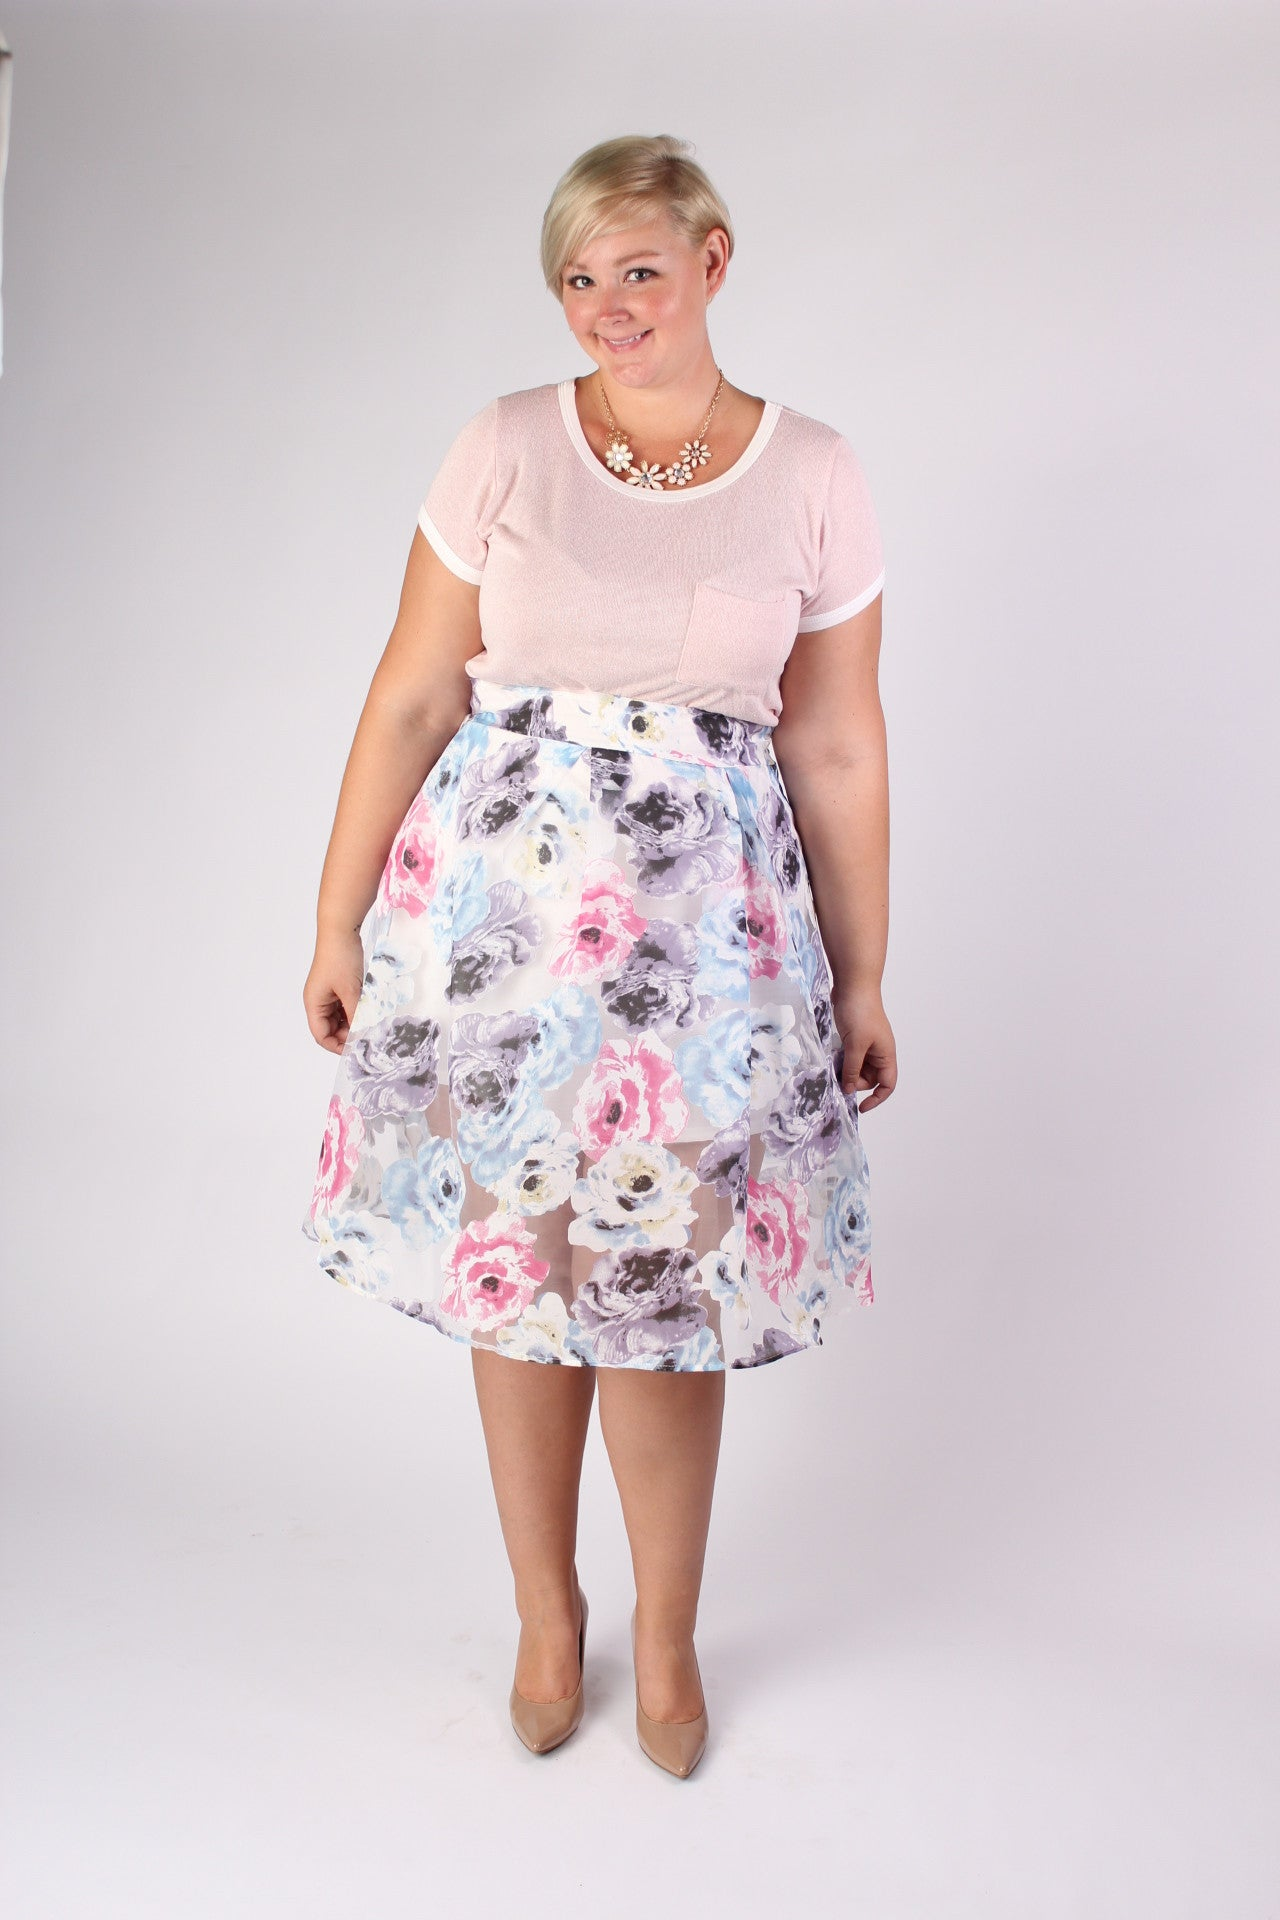 The perfect skirt has the perfect combination of cut, details, and the right amount of sass. This is the perfect skirt. The A-line cut compliments all your curves, the floral print screams summer, and the sheer top layer over the slip-like mini shows a little extra skin, all while keeping an air of mystery. What'd we say? Perfect. 100% Polyester Hand wash Made in U.S.A Length Size: 14/16 26.5